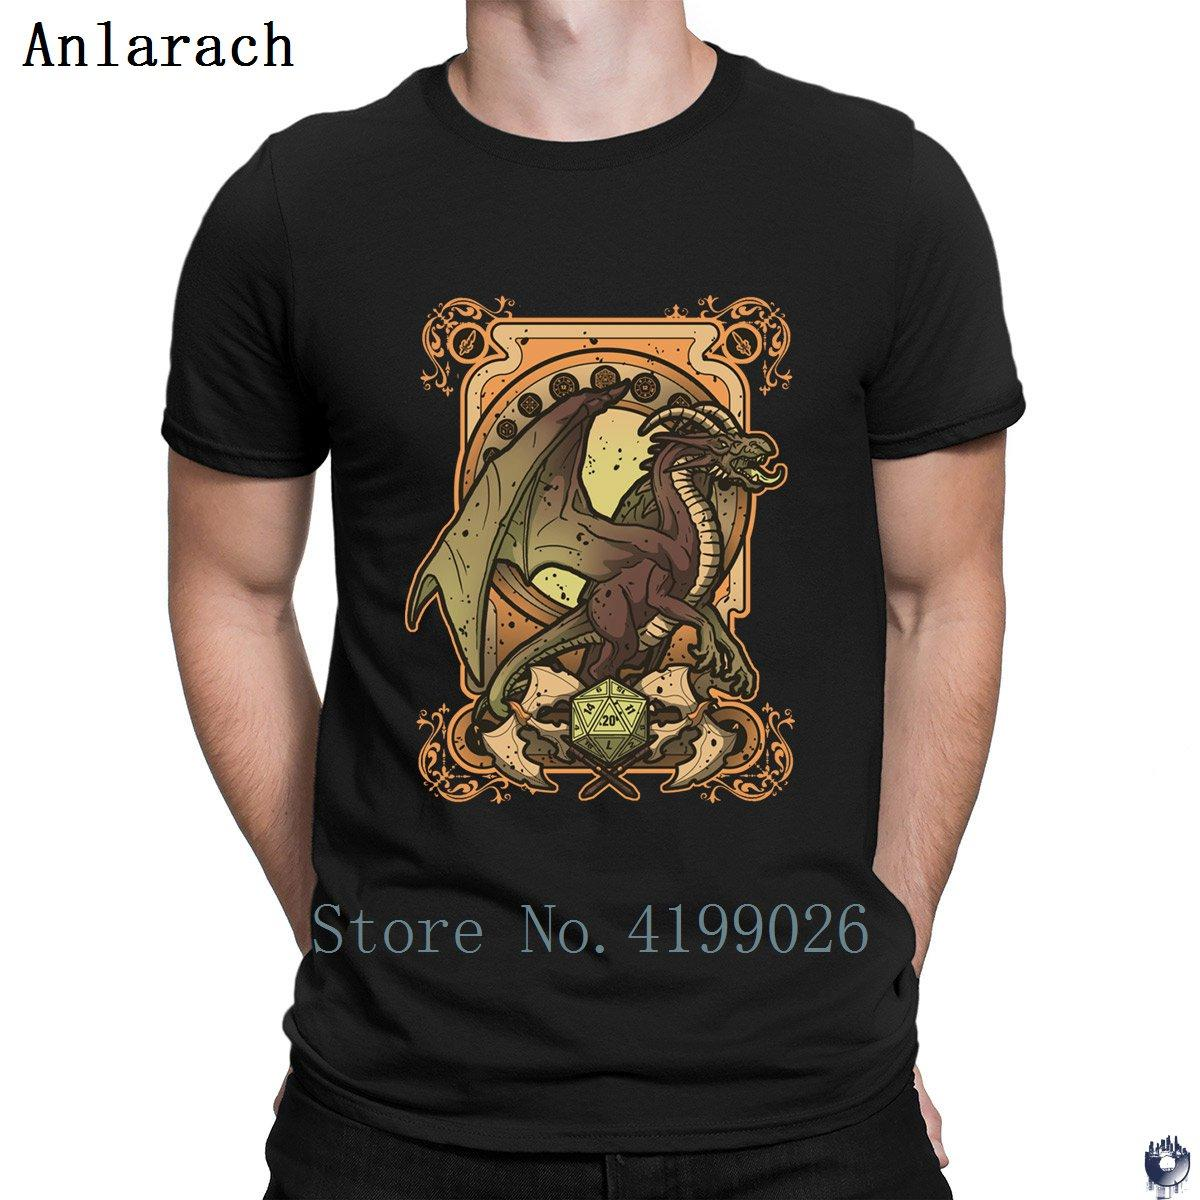 Dark Dragon tshirt S-3xl Pictures Design Top Quality t shirt for men Fit Spring Costume Anlarach New Style